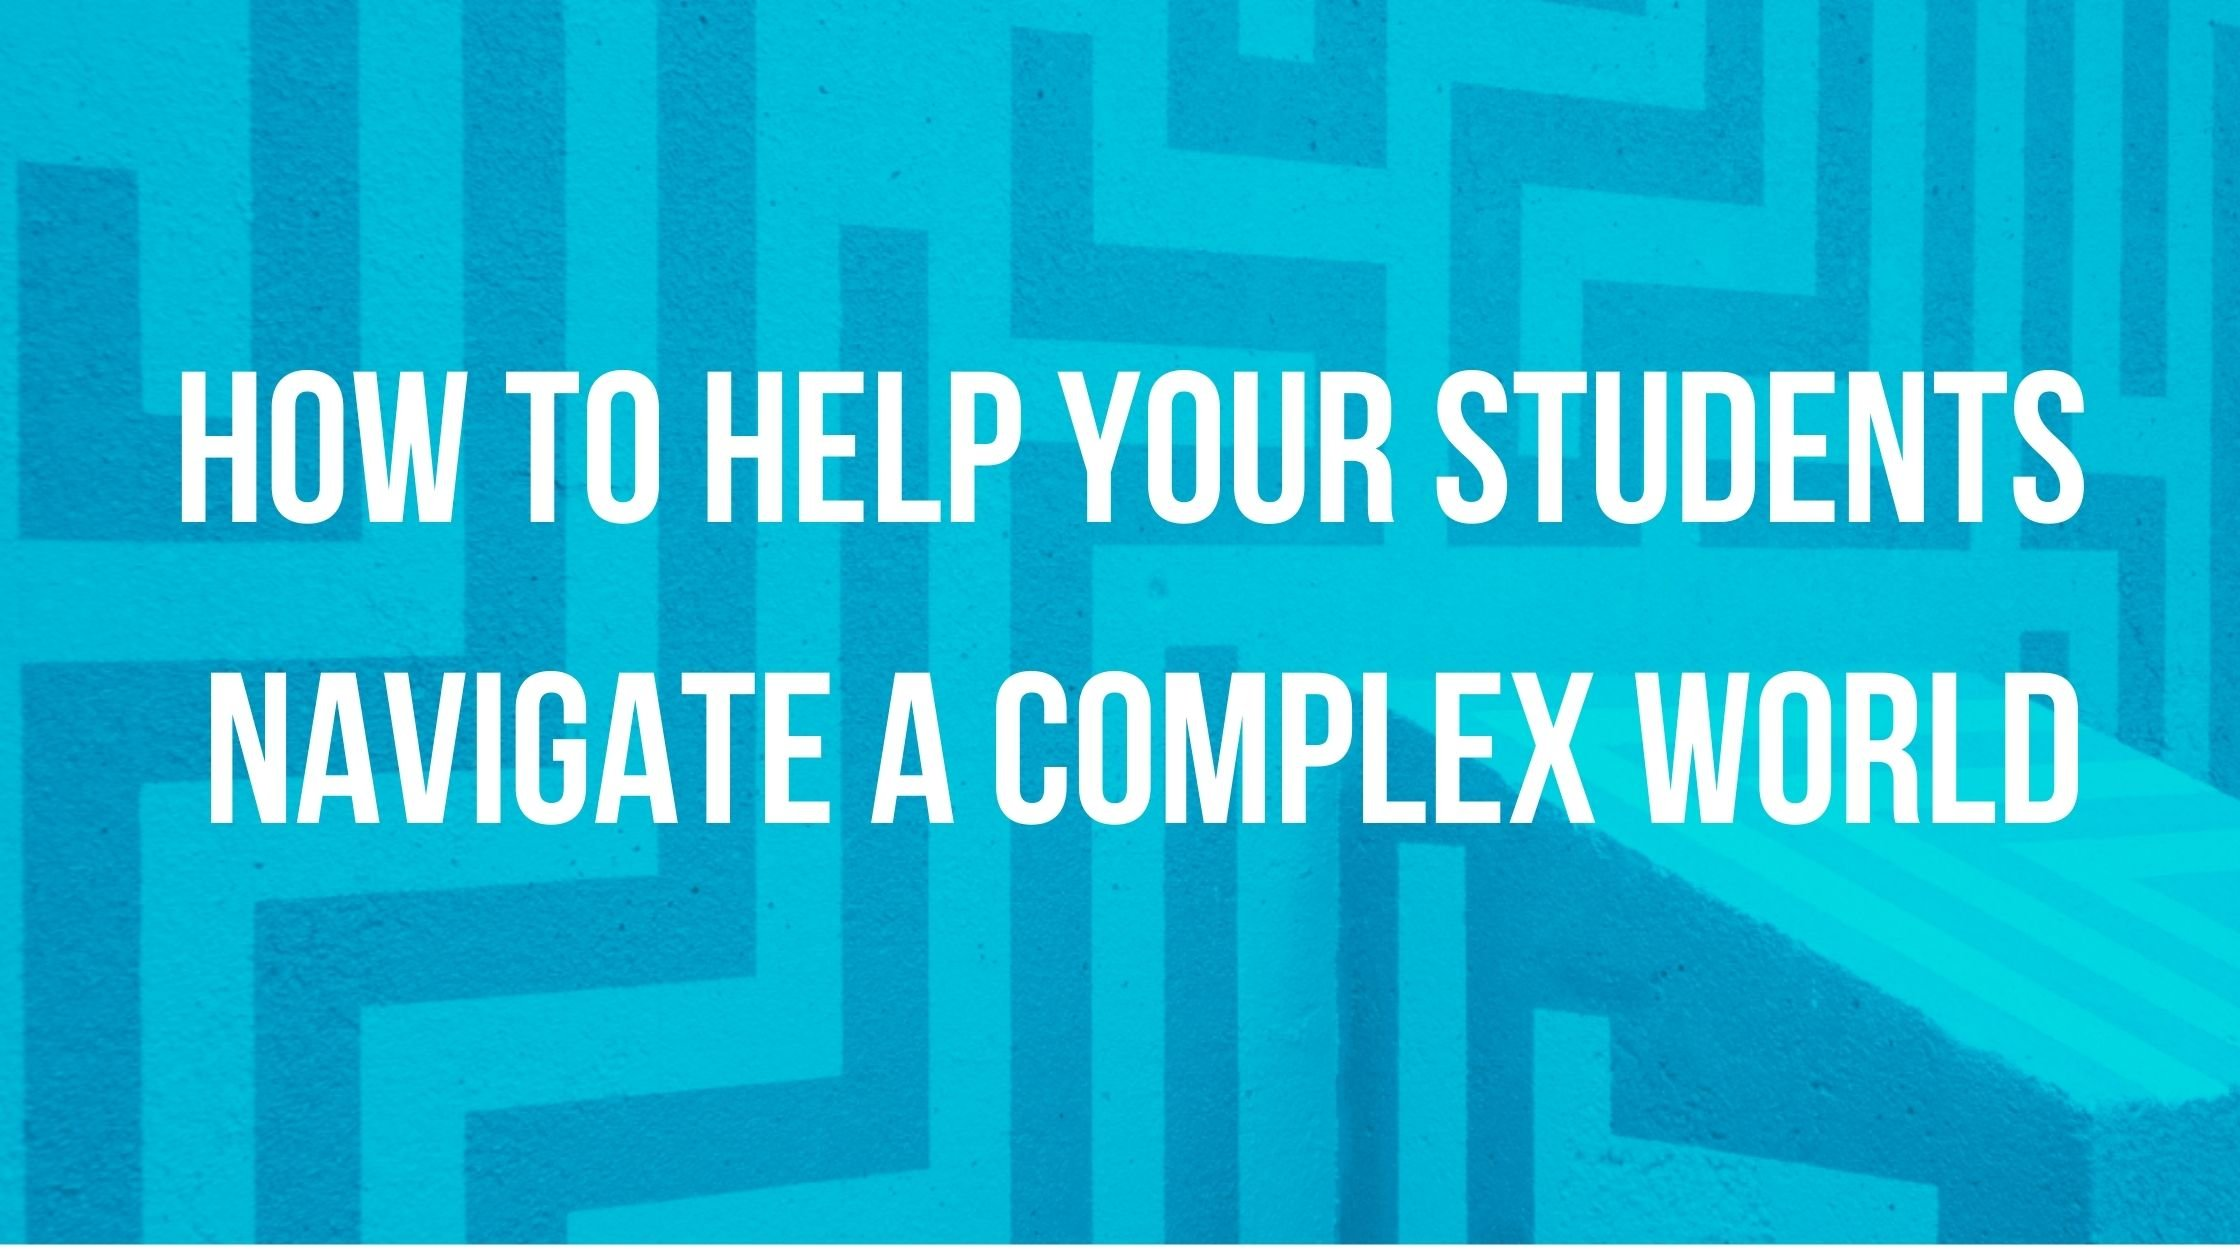 How to help your students navigate a complex world